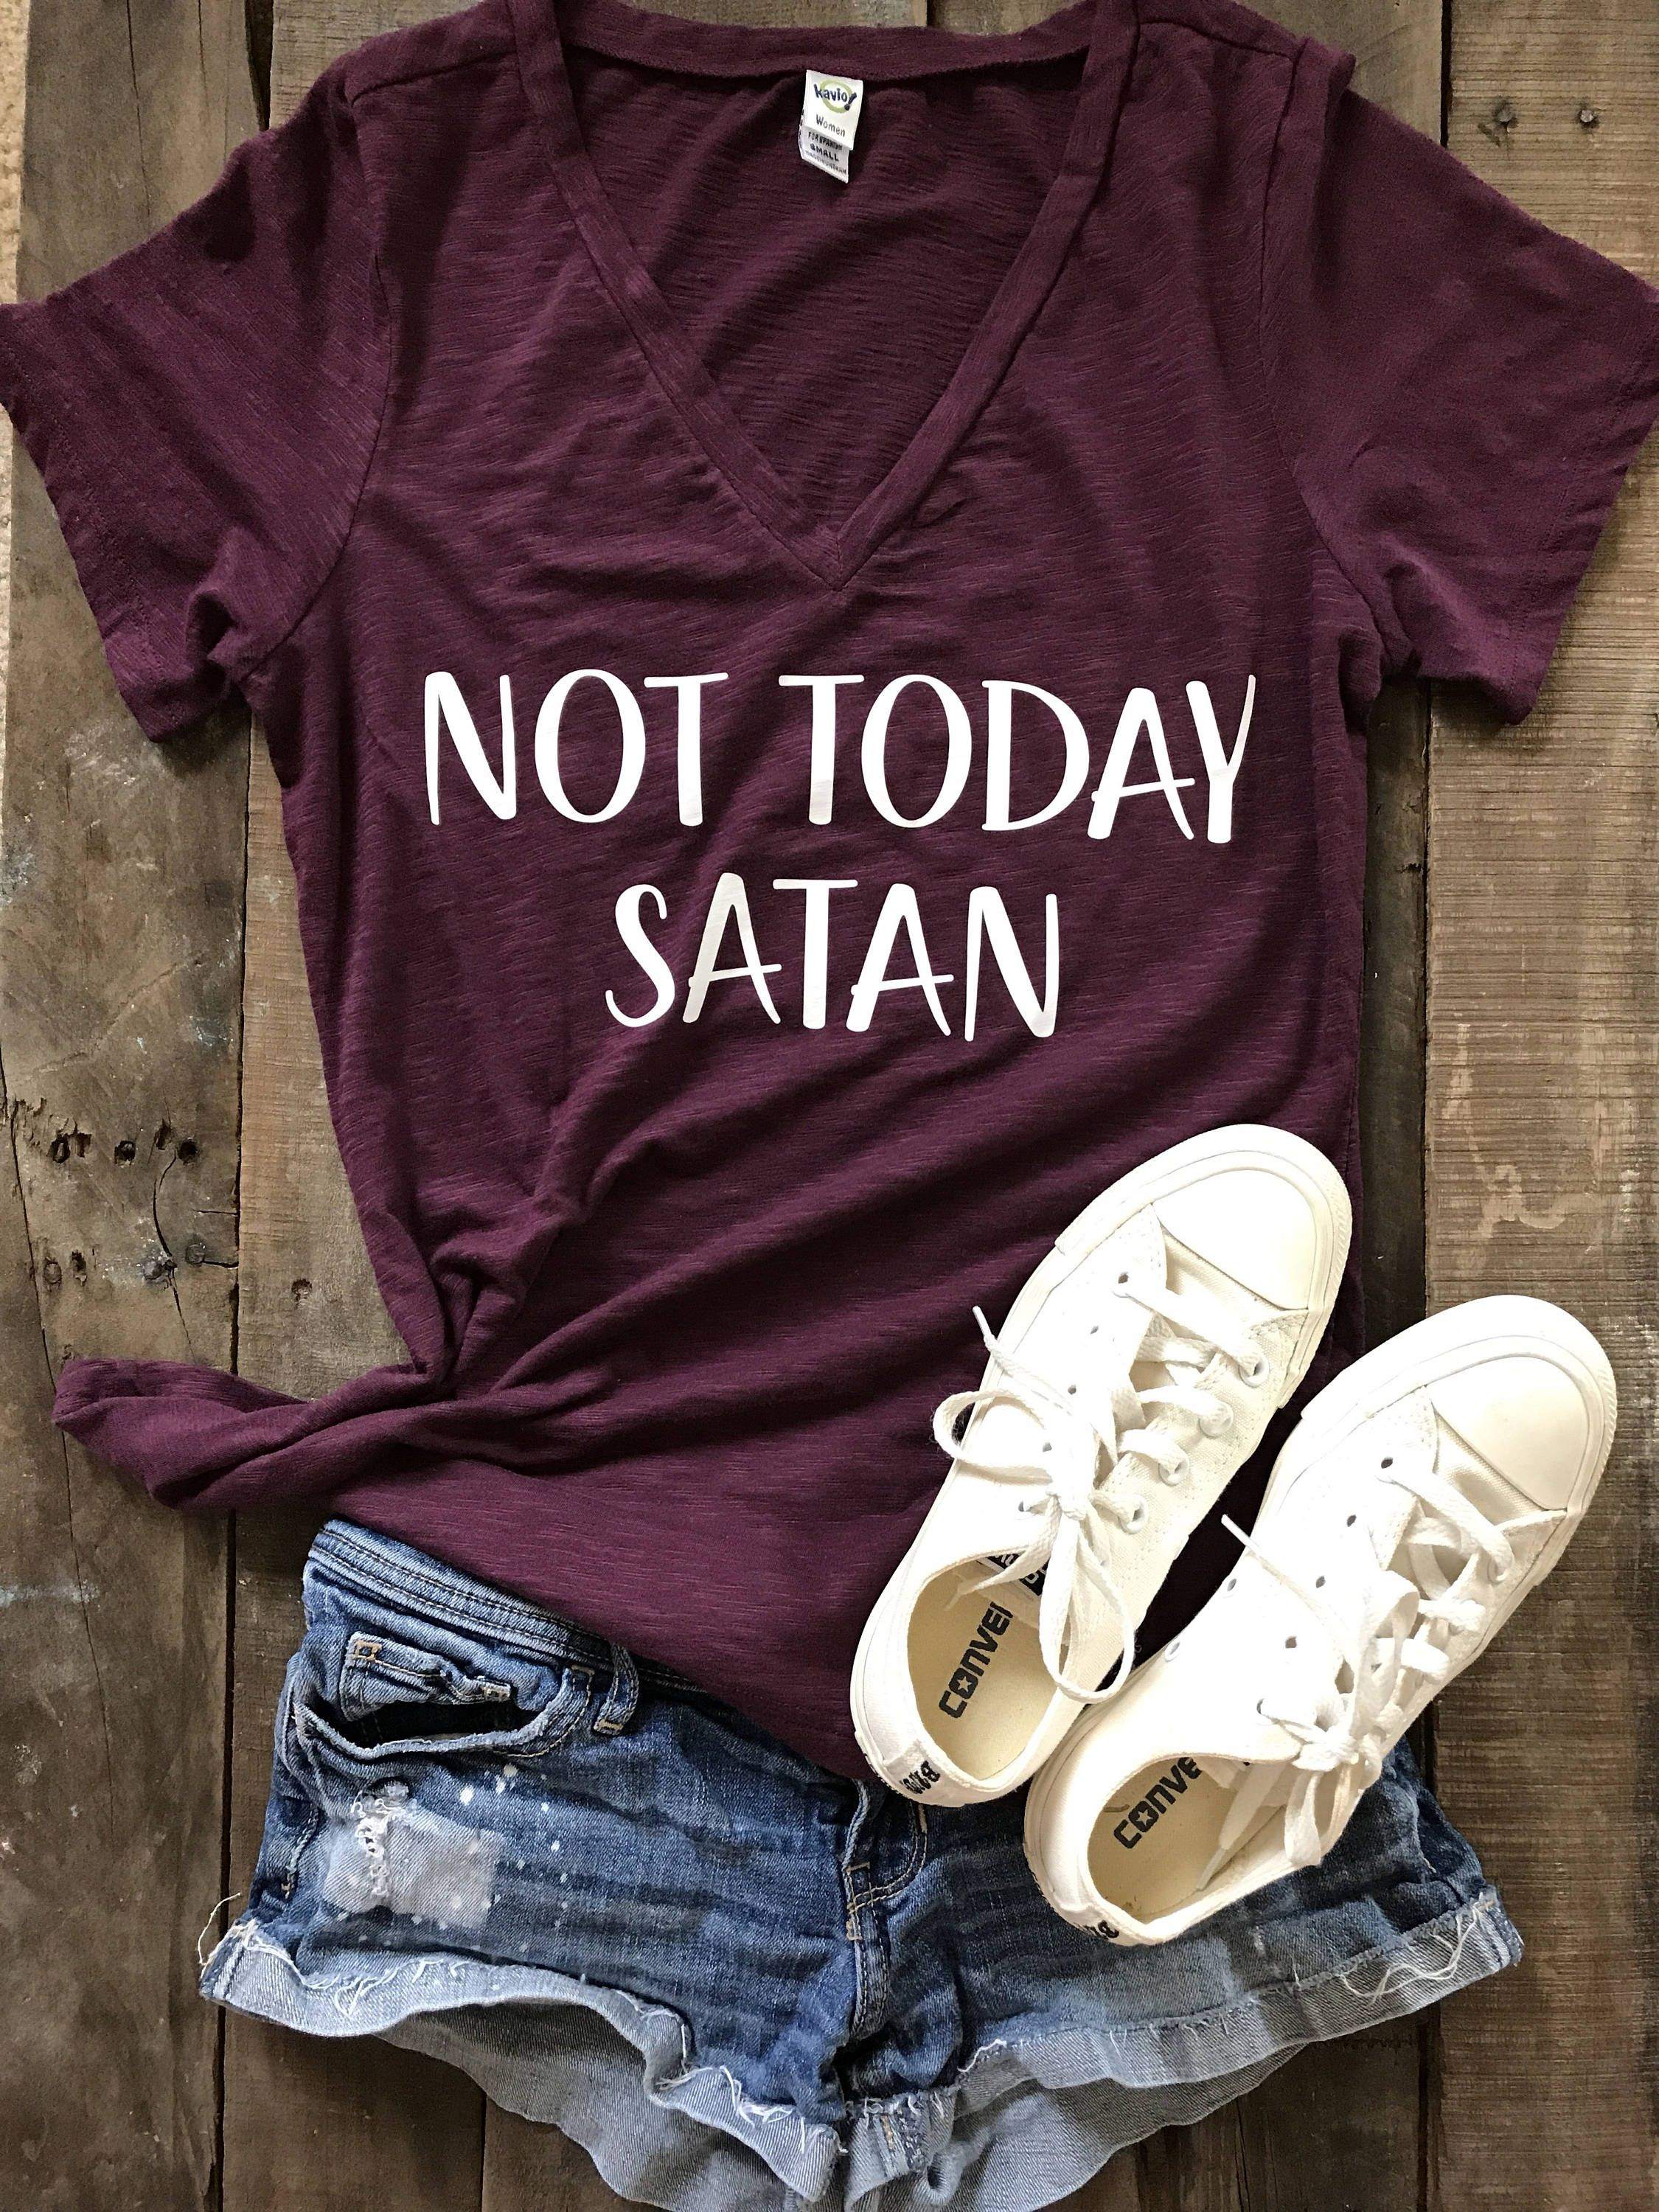 784fbad31 NOT TODAY SATAN WOMENS V-NECK SHIRT Not feelin a v-neck? No problem! All of  our designs can be put on any style top! Please be sure all order details  are ...